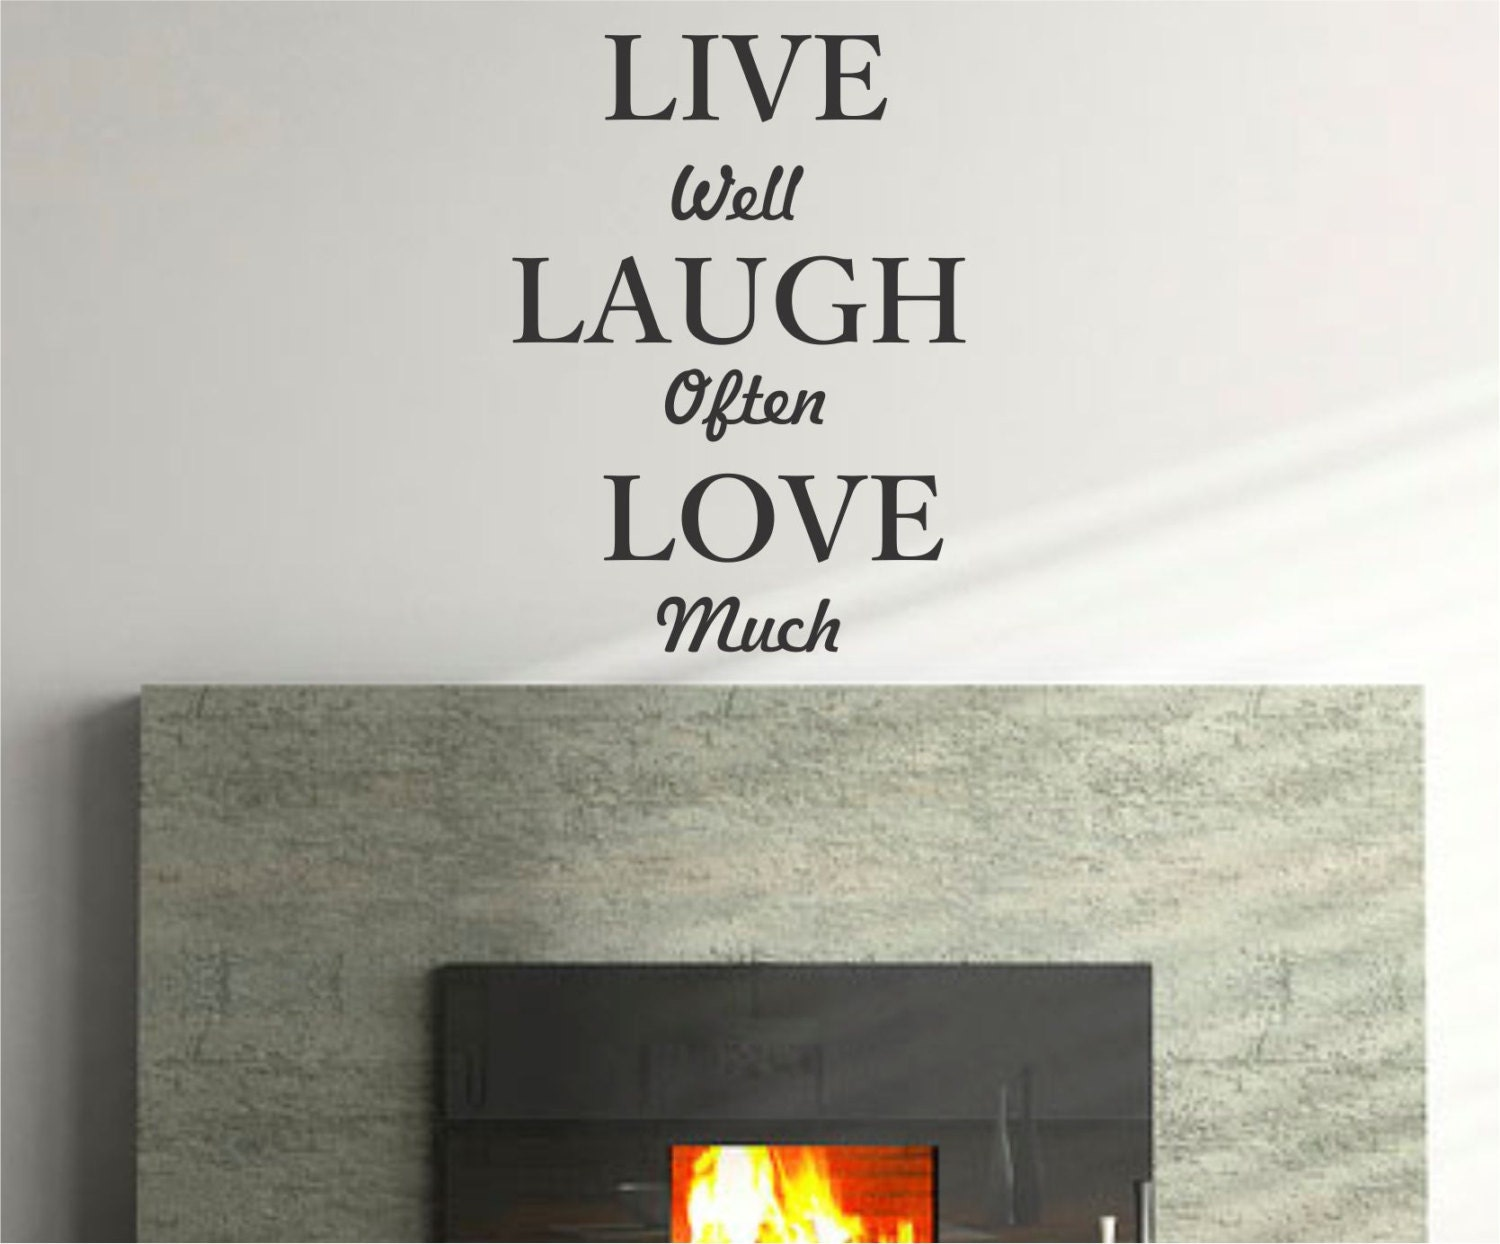 live well laugh often love much quote vinyl wall decal sticker. Black Bedroom Furniture Sets. Home Design Ideas